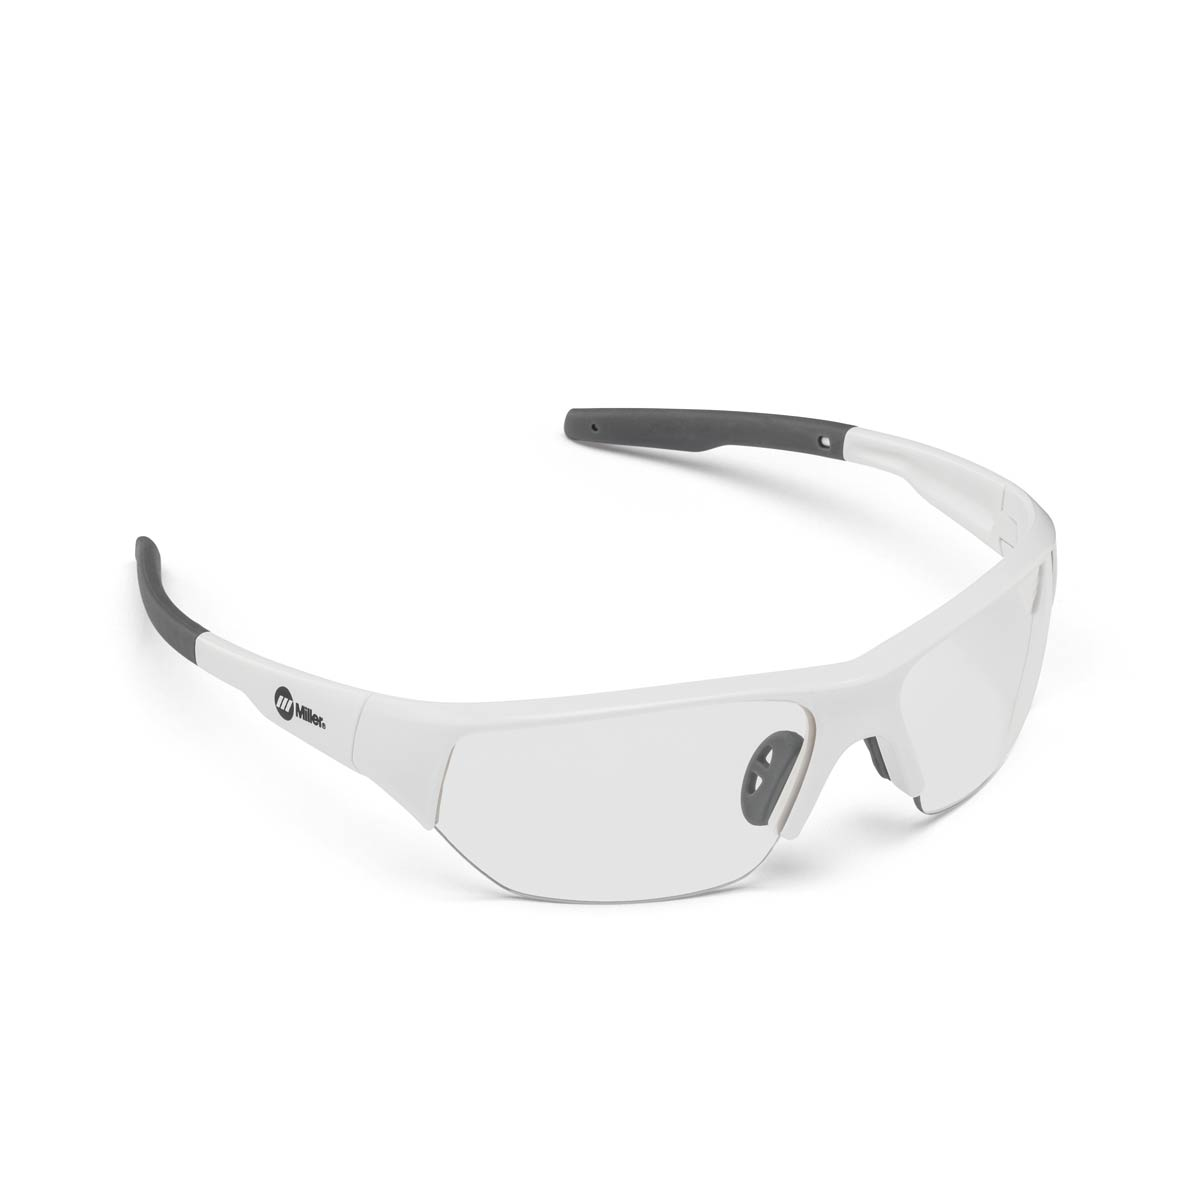 SAFETY GLASSES SPATTER WHITE CLEAR. Part: 272198. Pack: 1